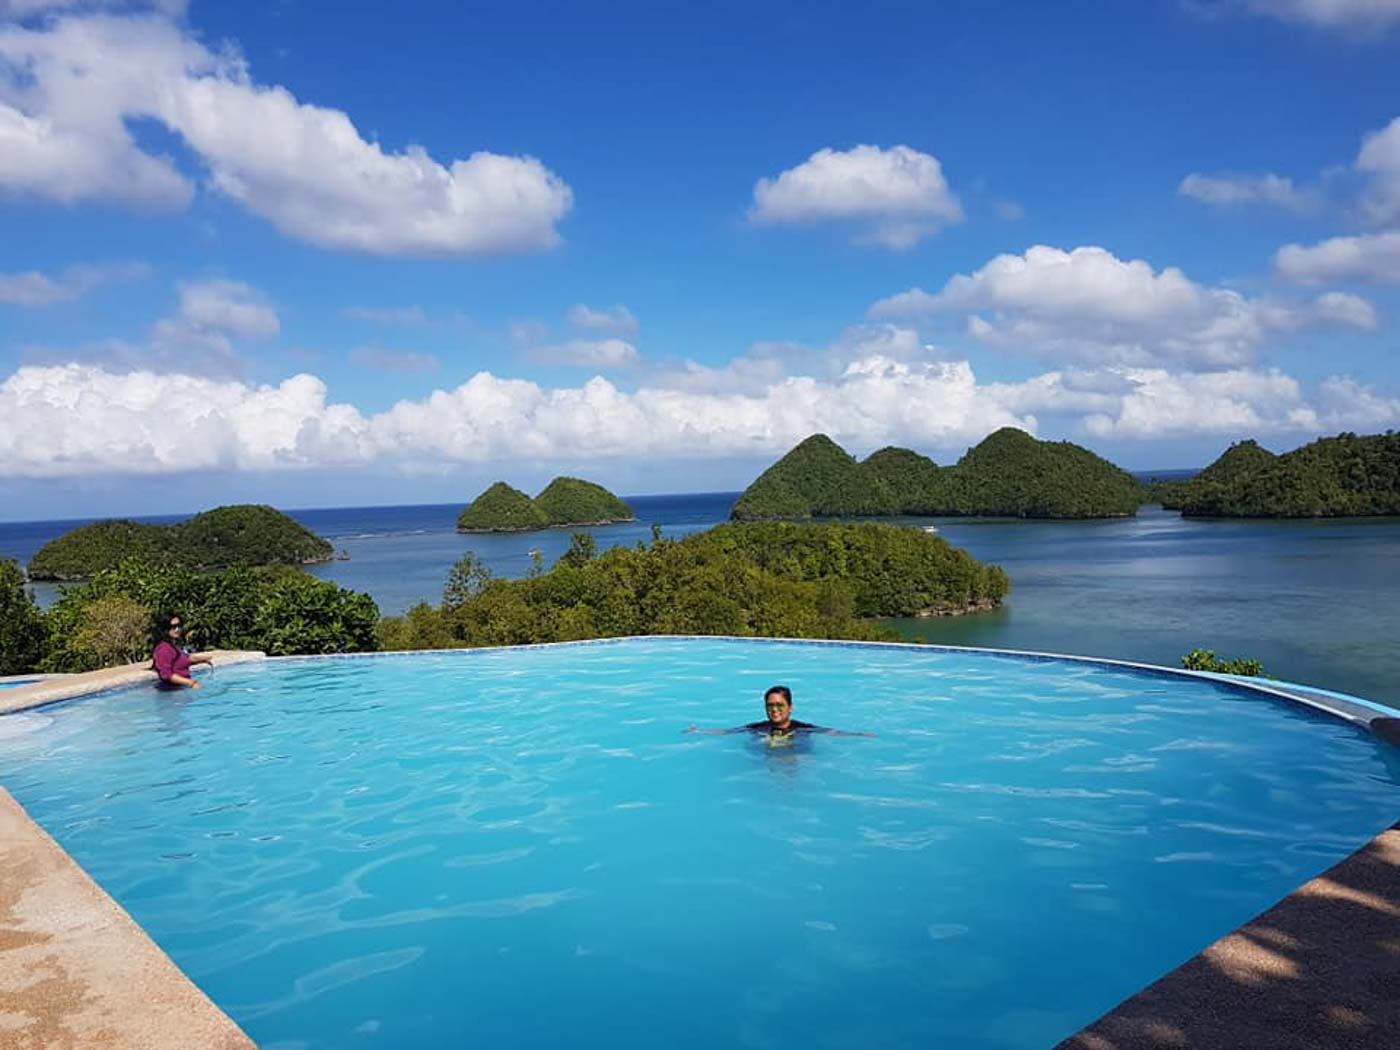 POOL VIEW. The islets can also be enjoyed from a private resort. Photo by Alberto Gadia